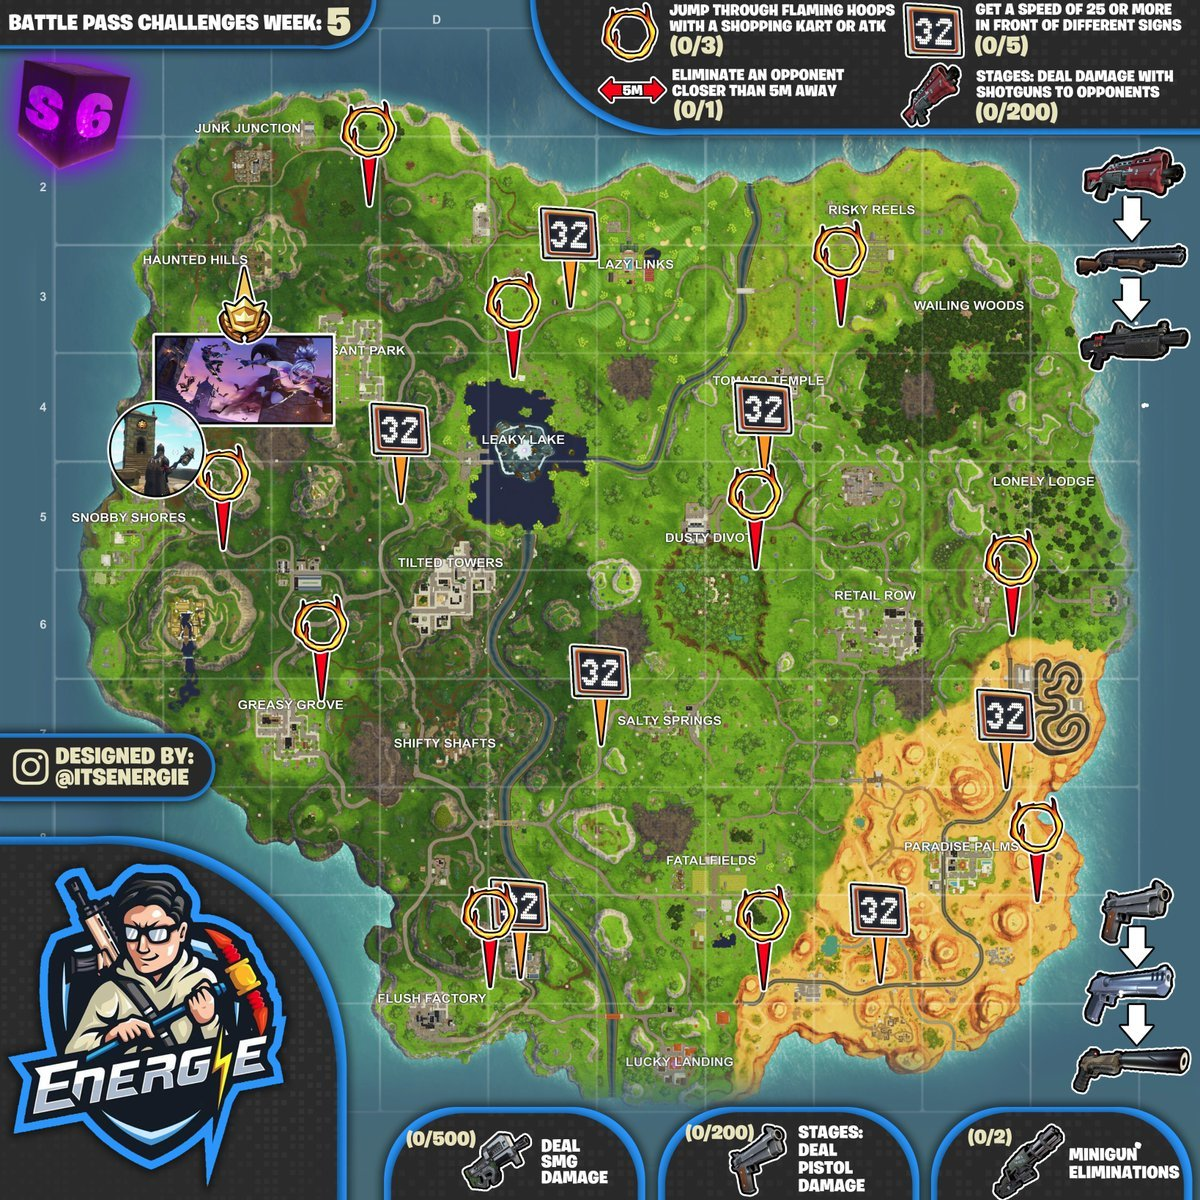 Cheat Sheet Map For Fortnite Battle Royale Season 6 Week 5